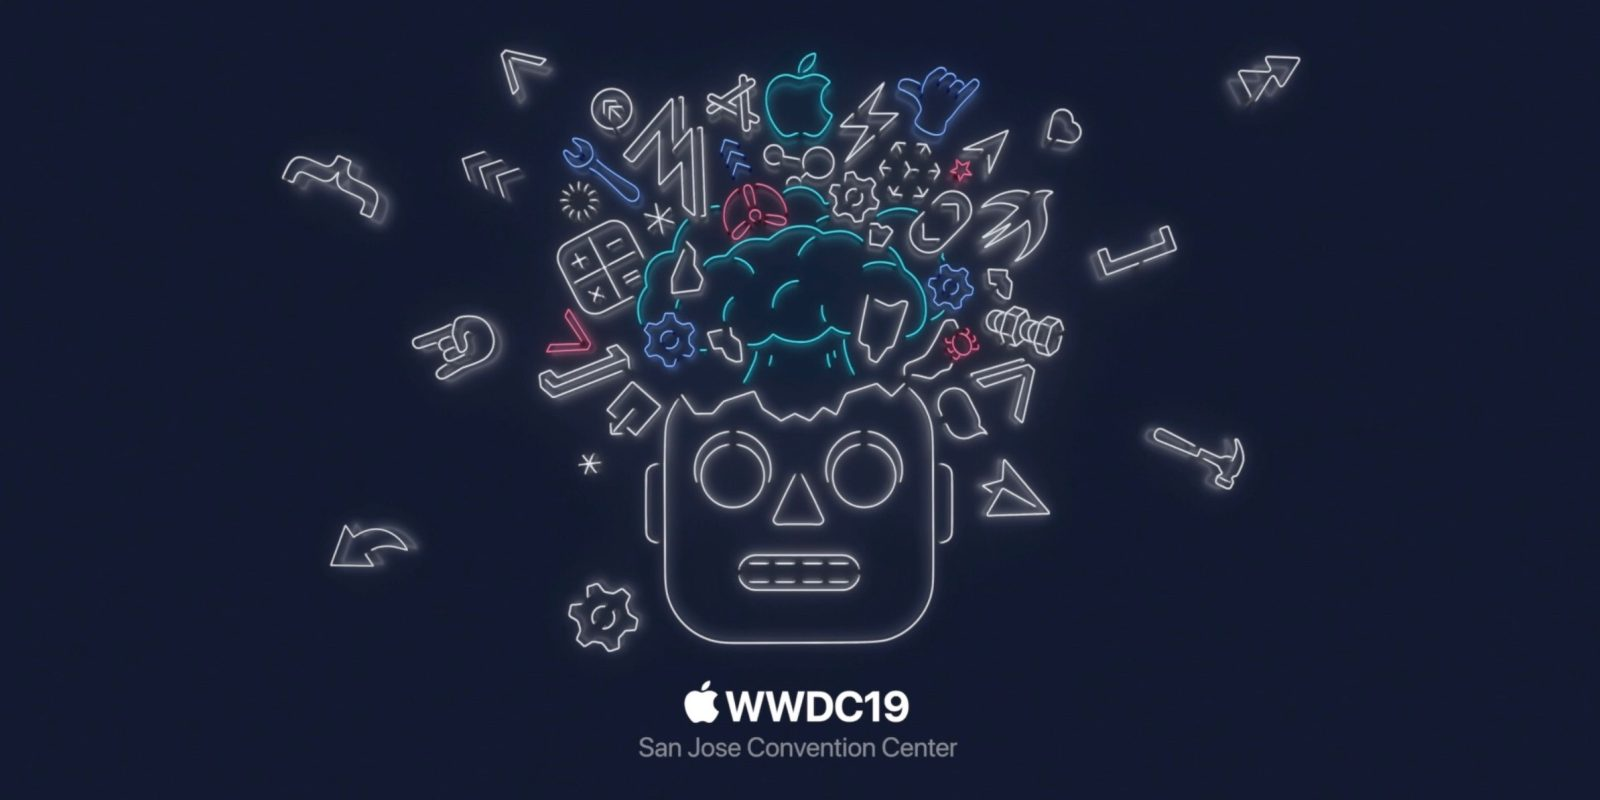 30497343bb3 Apple has today made transcripts of its WWDC 2019 videos available. This  makes it easy for developers to search through videos and sessions for  specific ...